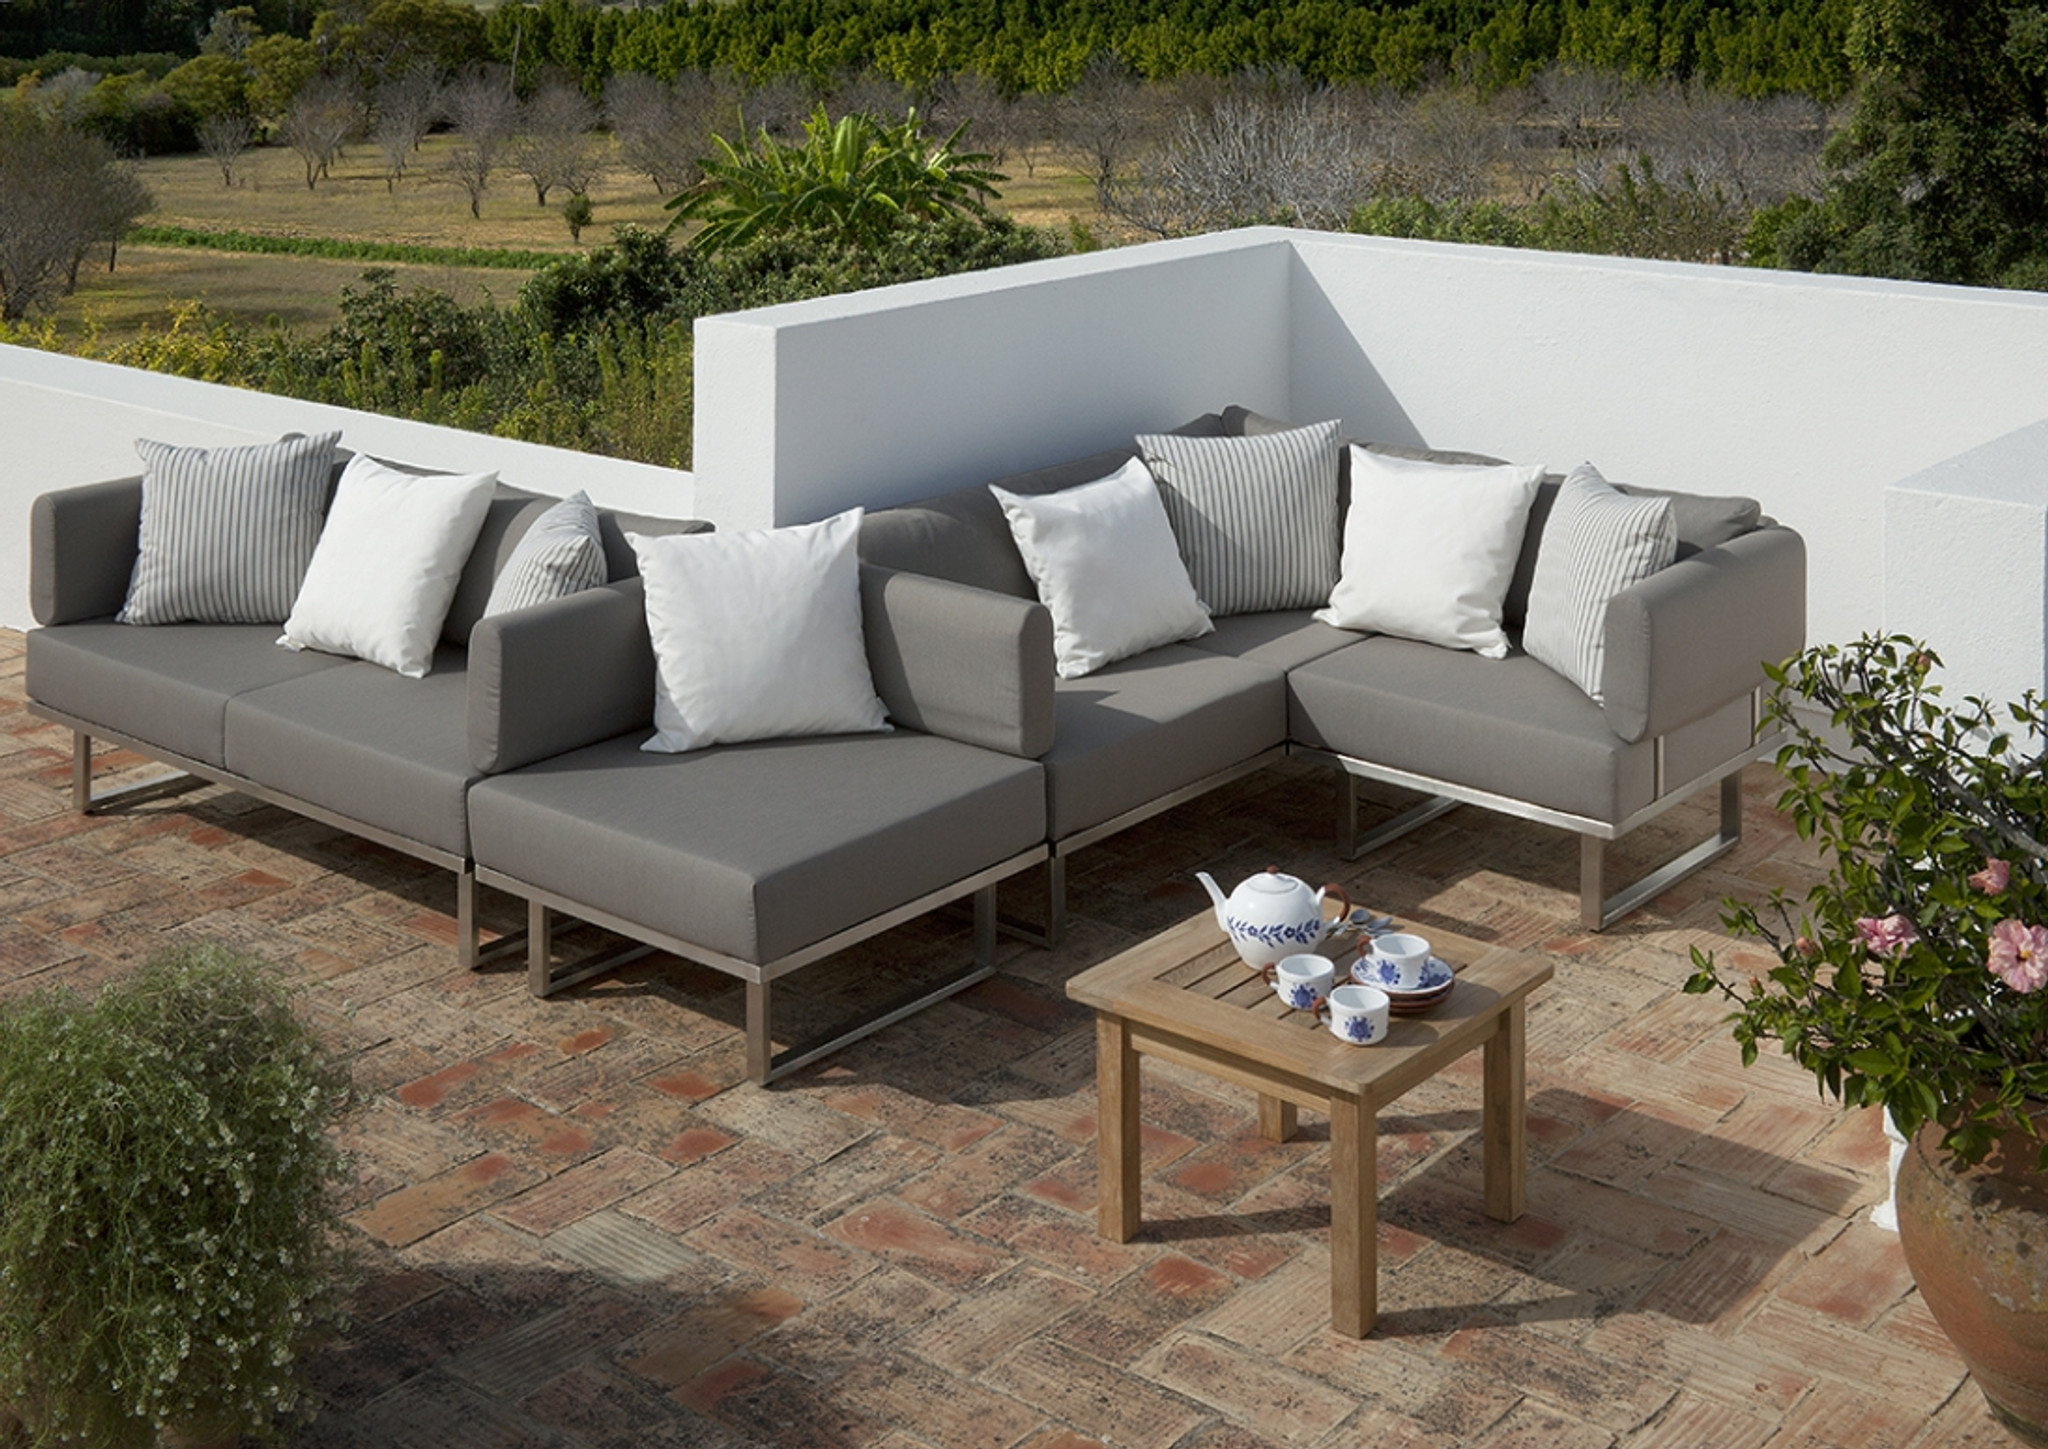 Collections Mercury Pacific Patio Furniture